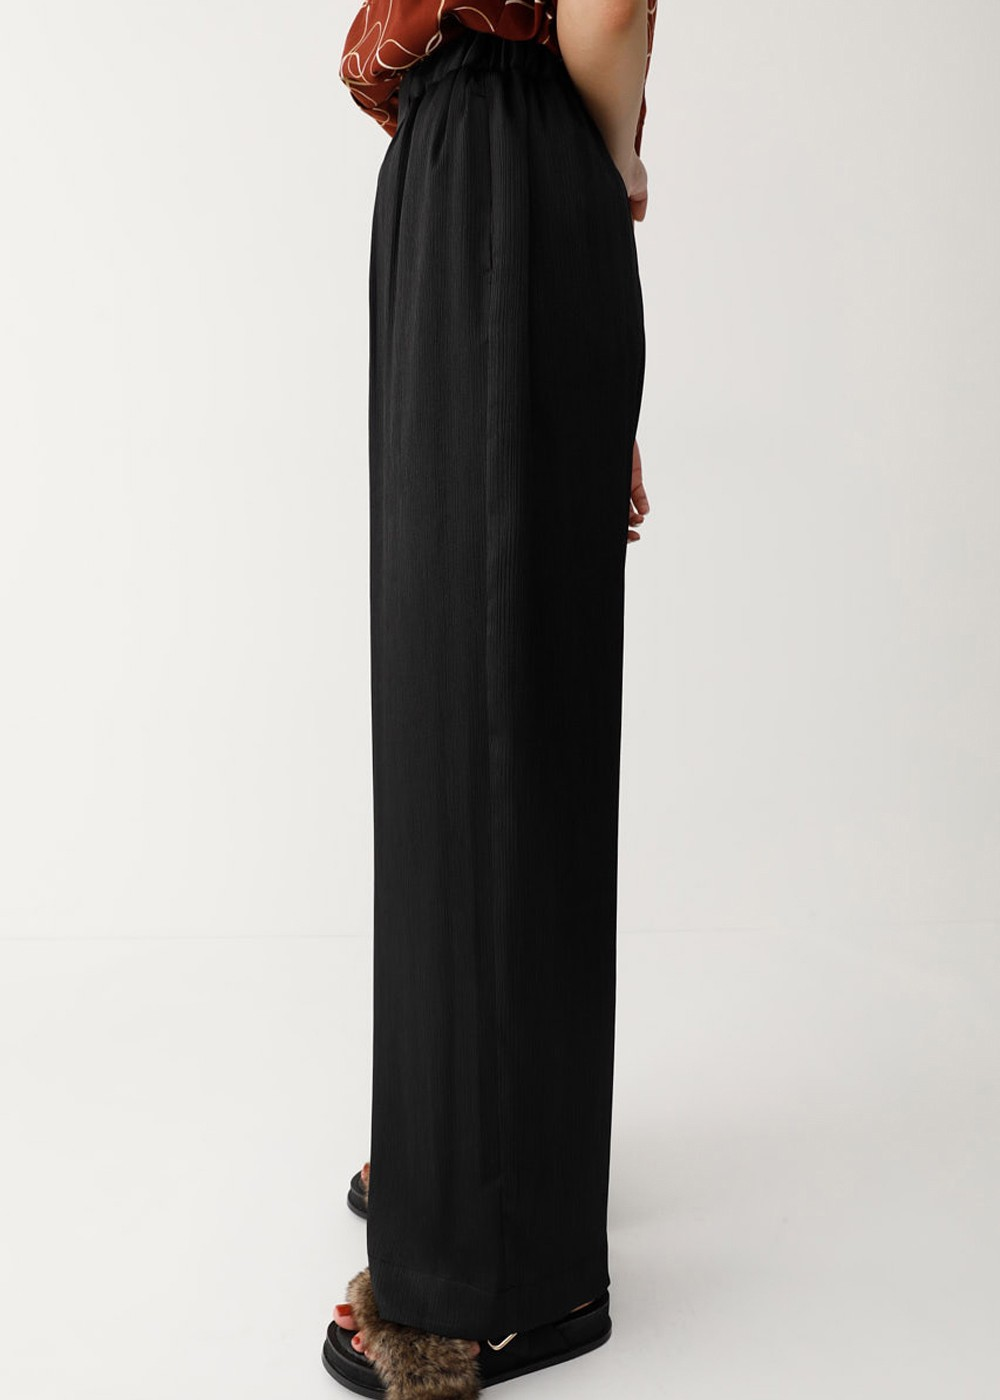 【最大70%OFF】NARROW PLEATS WIDE PANTS|BLK|ワイド|MOUSSY